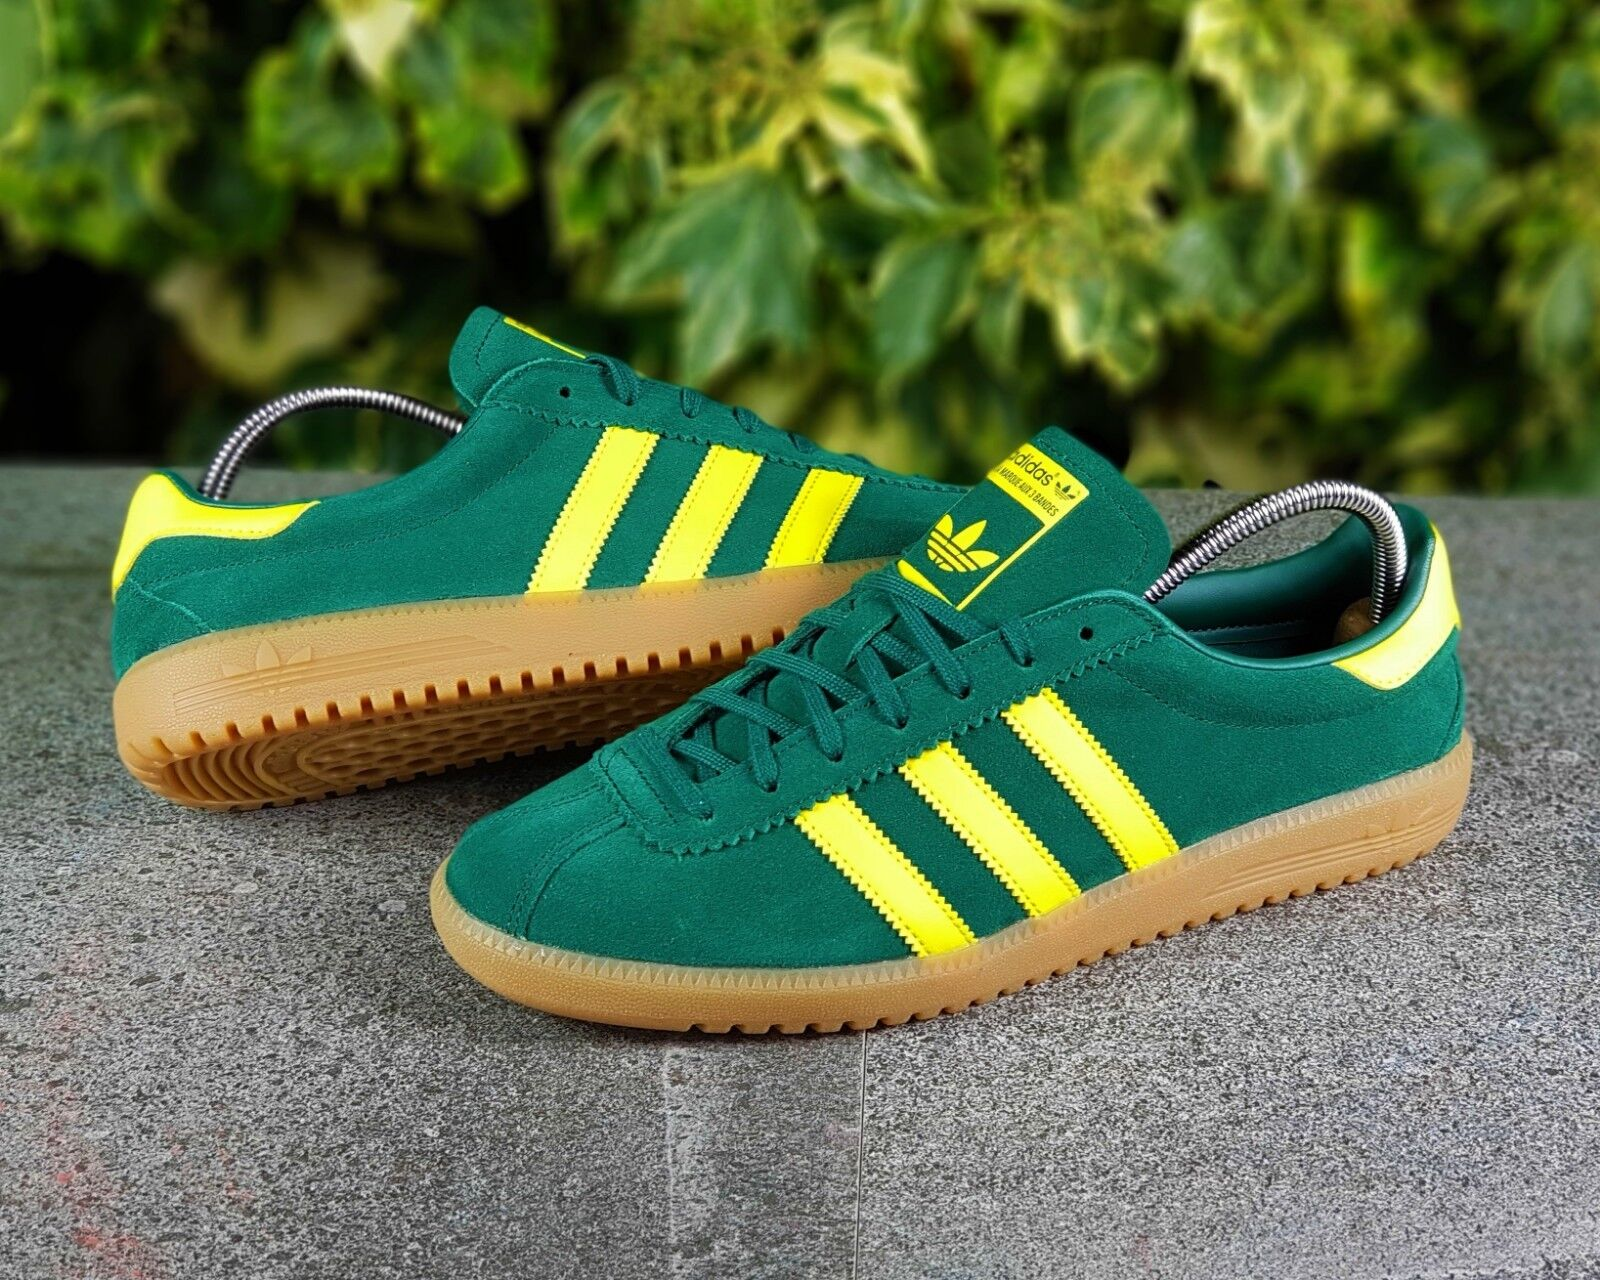 BNWB & Genuine Adidas Originals ® Bermuda Grün Suede Retro Trainers UK Größe 7